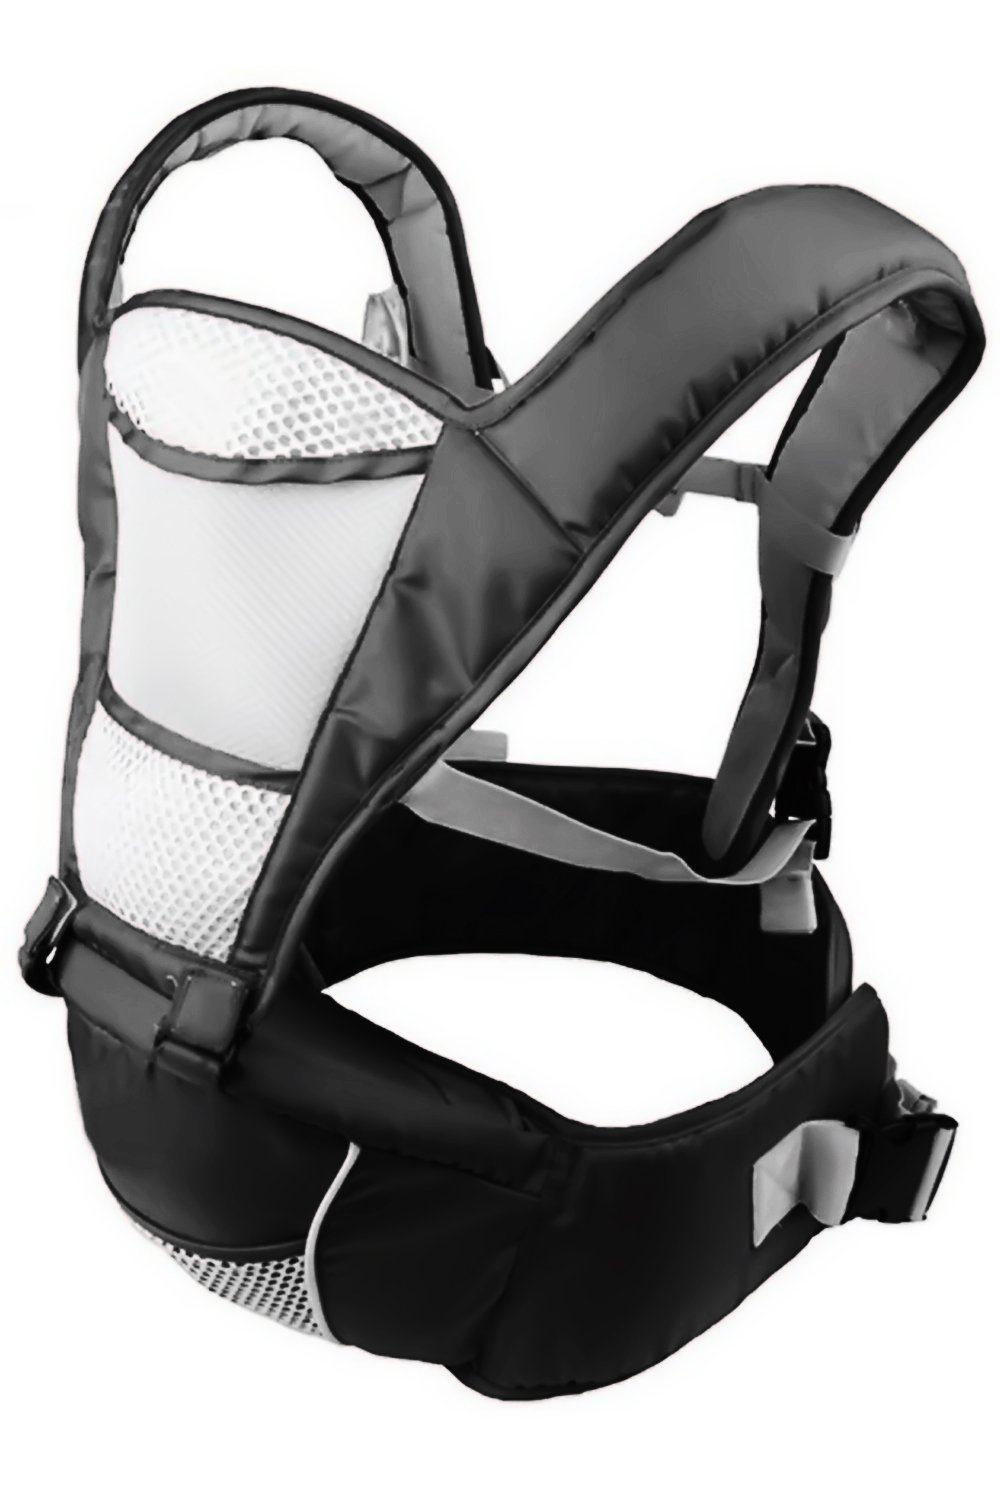 Baby Carrier Hip Seat Sling by NimNik Best Safe Backpack Carriers Back Pain Support (Pearl Black) NimNik ★ NO MORE BACK AND SHOULDER PAIN - NimNik offers an innovation in baby carrying fashion and quality for girls and boys! This Soft Structured Baby Carrier is not only versatile with four different carry positions, but perfectly comfortable for both you and your little one. That twined with unmatched durability makes NimNik Baby Carriers a popular choice in ergonomic baby carriers! ★ DESIGNED FOR STYLE AND COMFORT - With superior padding in our adjustable EXTRA LONG WAIST STRAPS (50 inches / 125 cms) and ergonomic lumbar support for you, say goodbye to backpain and other back, hip and shoulder related carrying issues. With the extremely ergonomic hip seat, you can rest assured that your little one is sitting pretty in style and comfort no matter how you carry! ★ PREMIUM COTTON FOR SOFT AND COSY FEELING - From front facing out and facing in, to hip, to back carry, you'll be comfortable, and so will children. Not every baby likes to be carried the same way, from 6 months and up. Our baby carrier comes with a wide range of comfortable carry positions to use as best suits the both of you, without the back pain after maternity. 2